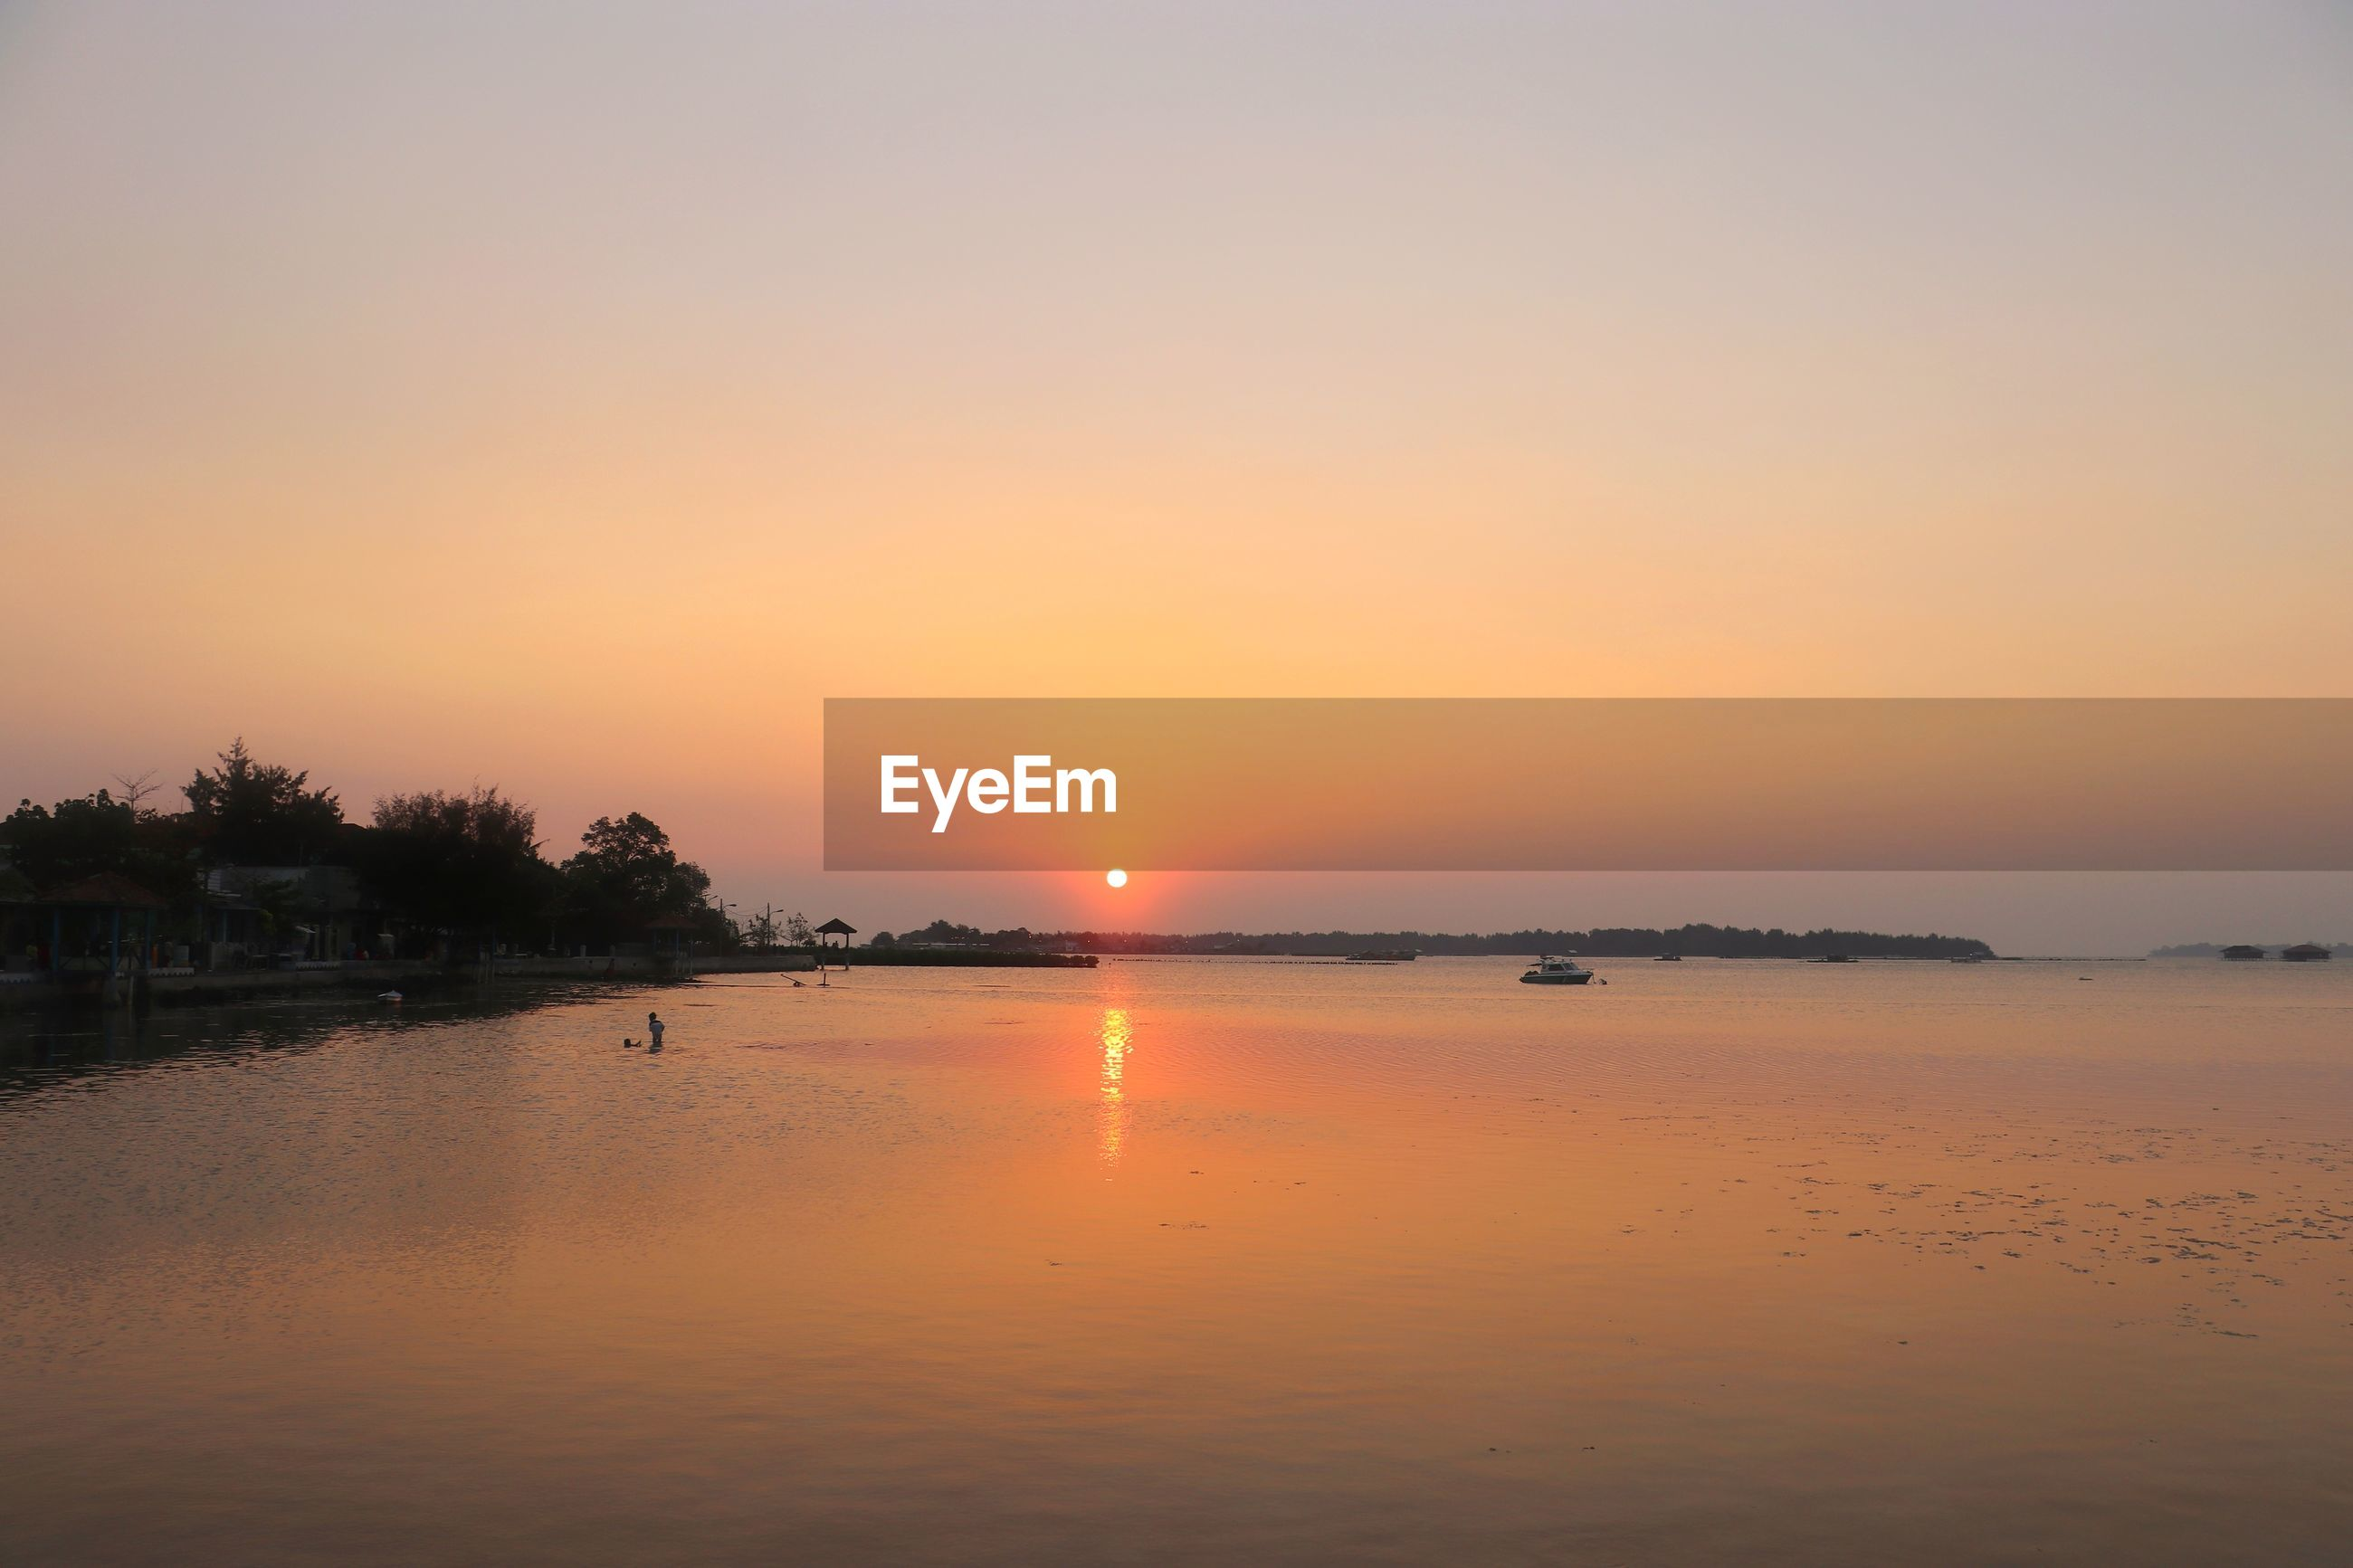 SCENIC VIEW OF LAKE AGAINST ORANGE SKY DURING SUNSET